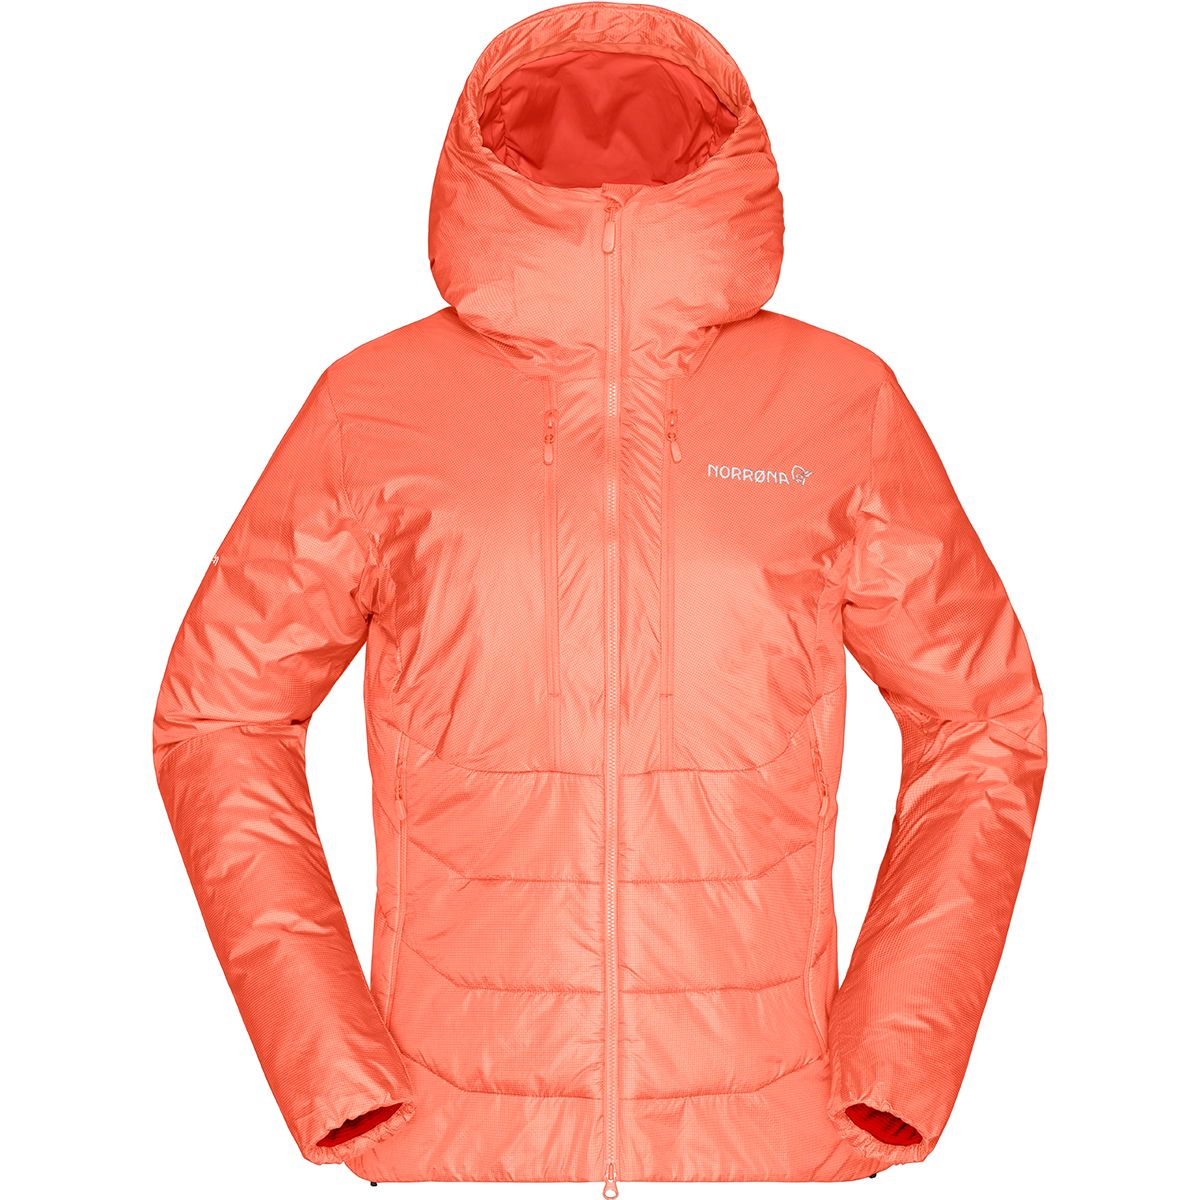 Norrona Damen Trollveggen Primaloft100 Zip Hood Jacke (Größe S, Orange) | Isolationsjacken > Damen